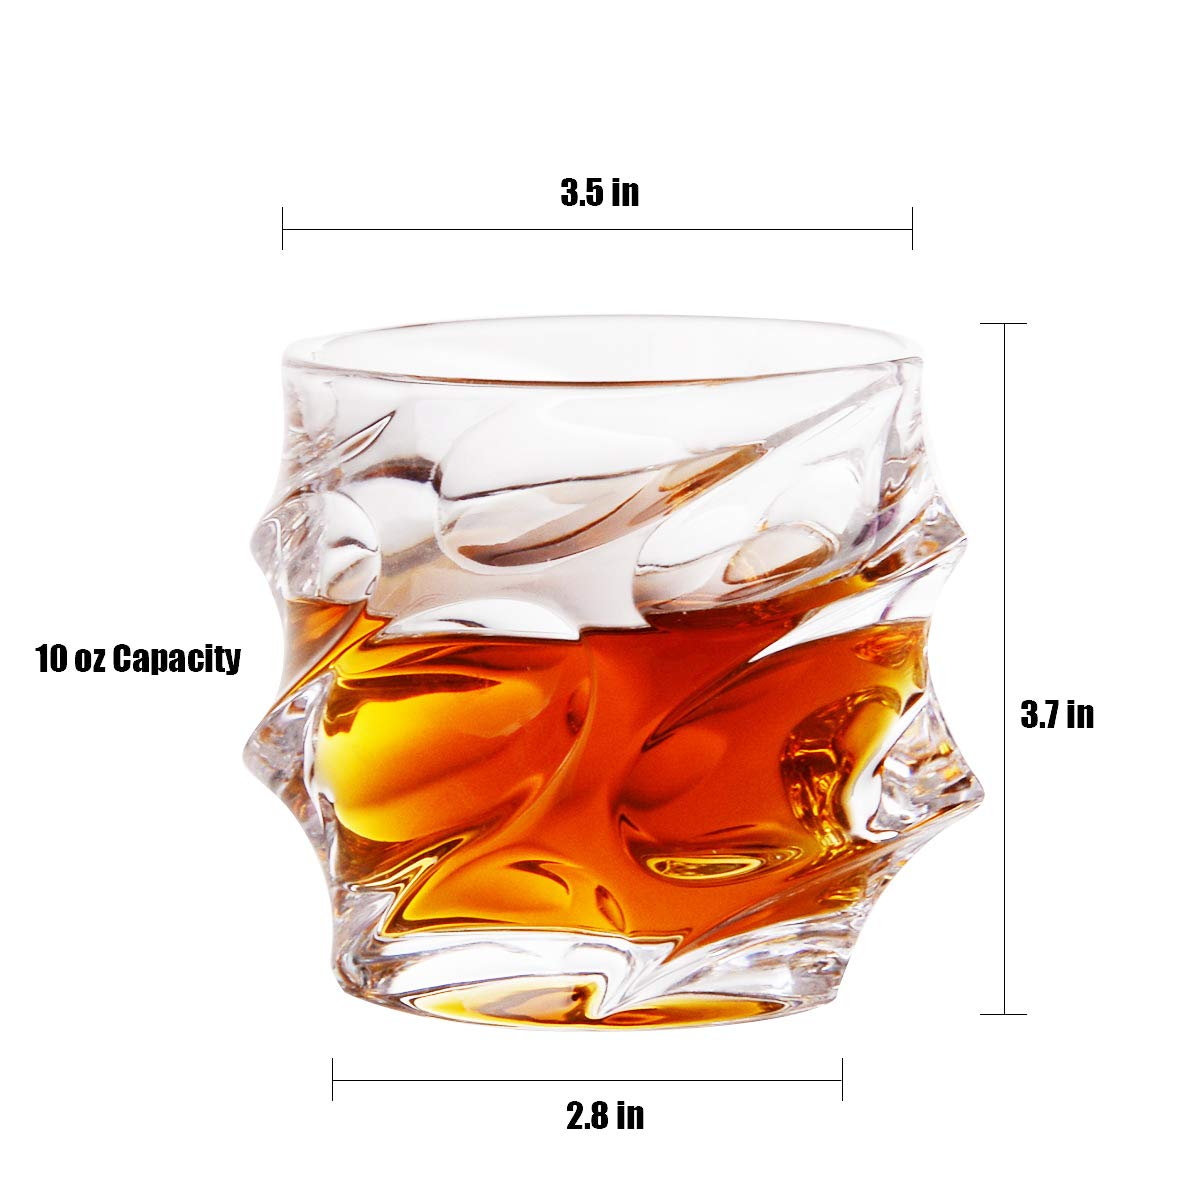 Old Fashioned Whiskey Glasses Set of 4 Glass Whisky Tumblers (300ml/10oz) Lead-Free Old Fashioned Glass Set, Crystal Glasses for Drinking Bourbon, Cocktails, Scotch, Vodka, and More